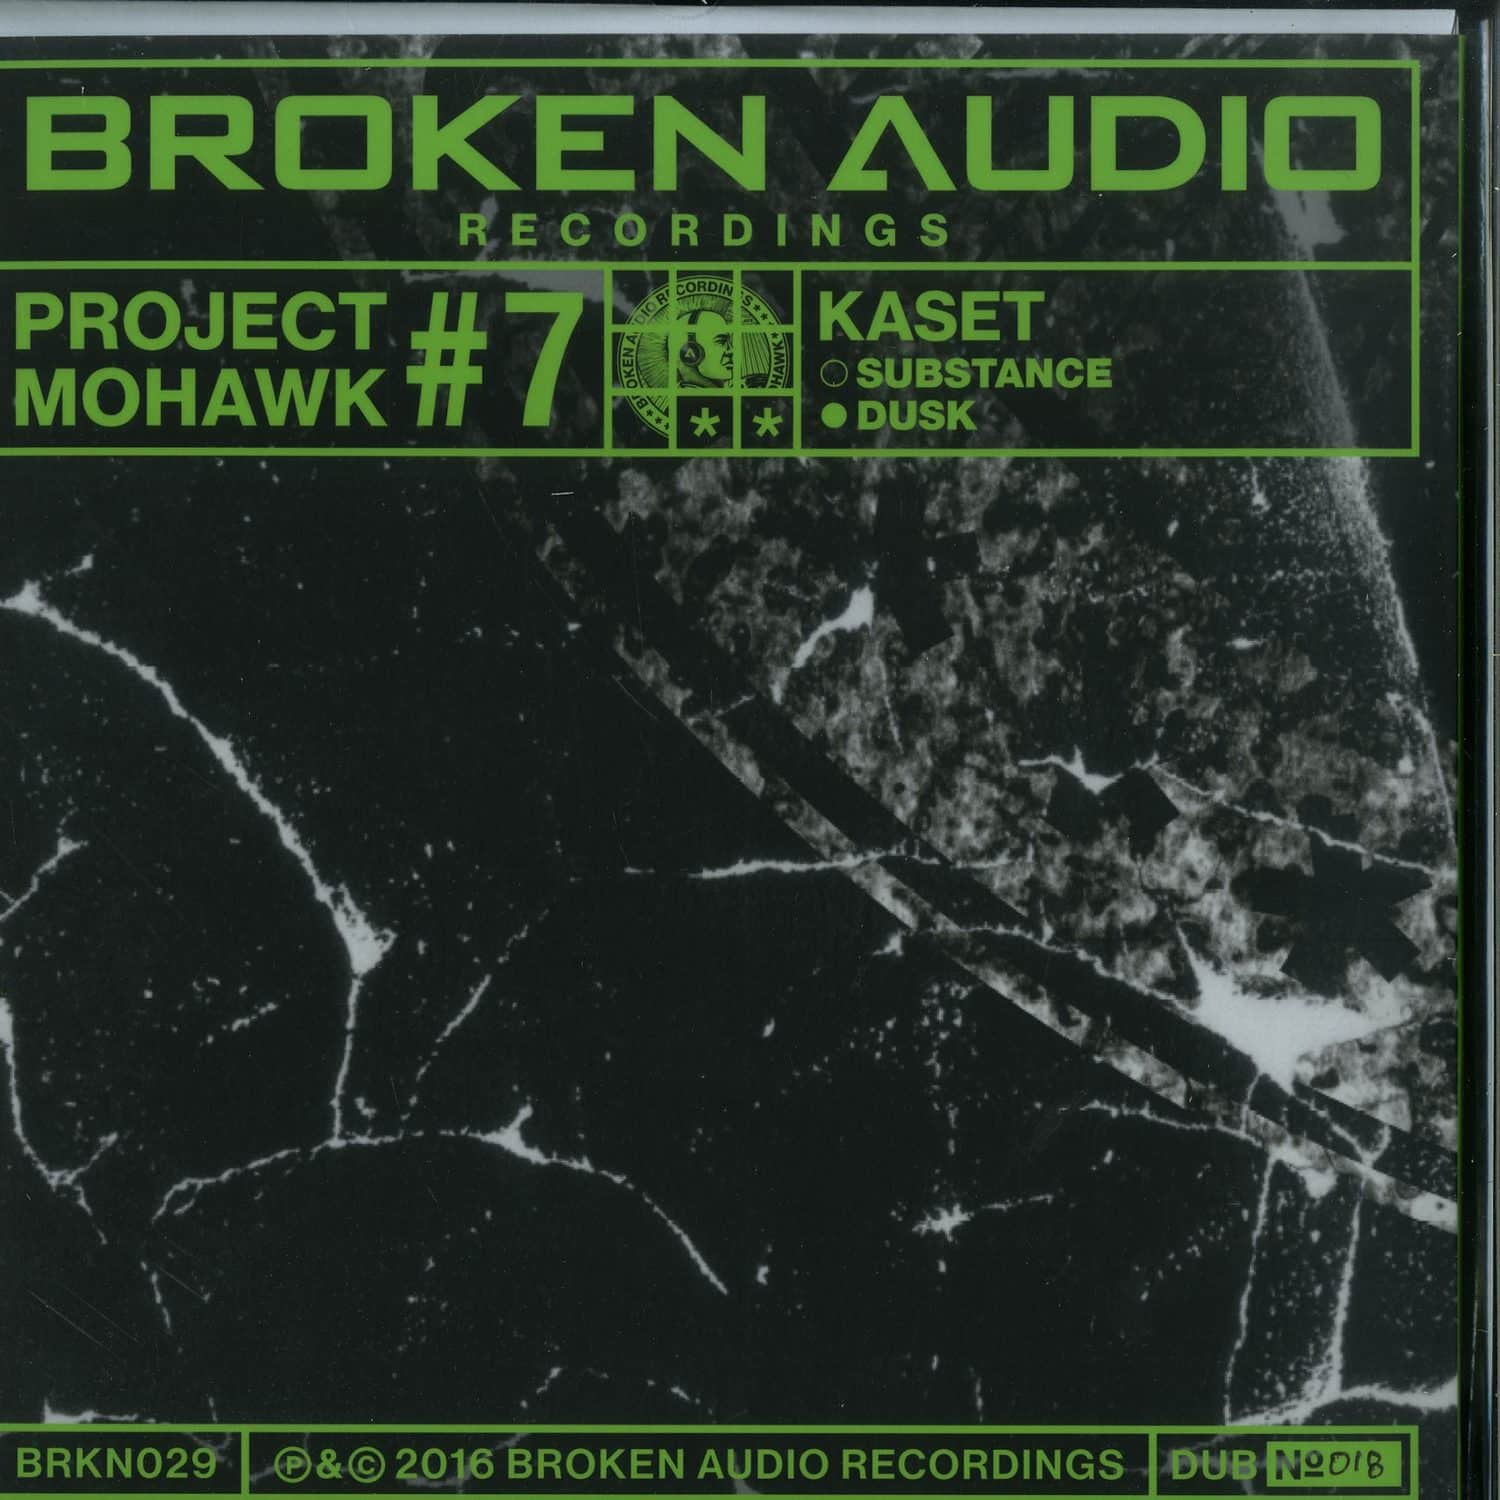 Kaset - PROJECT MOHAWK 7